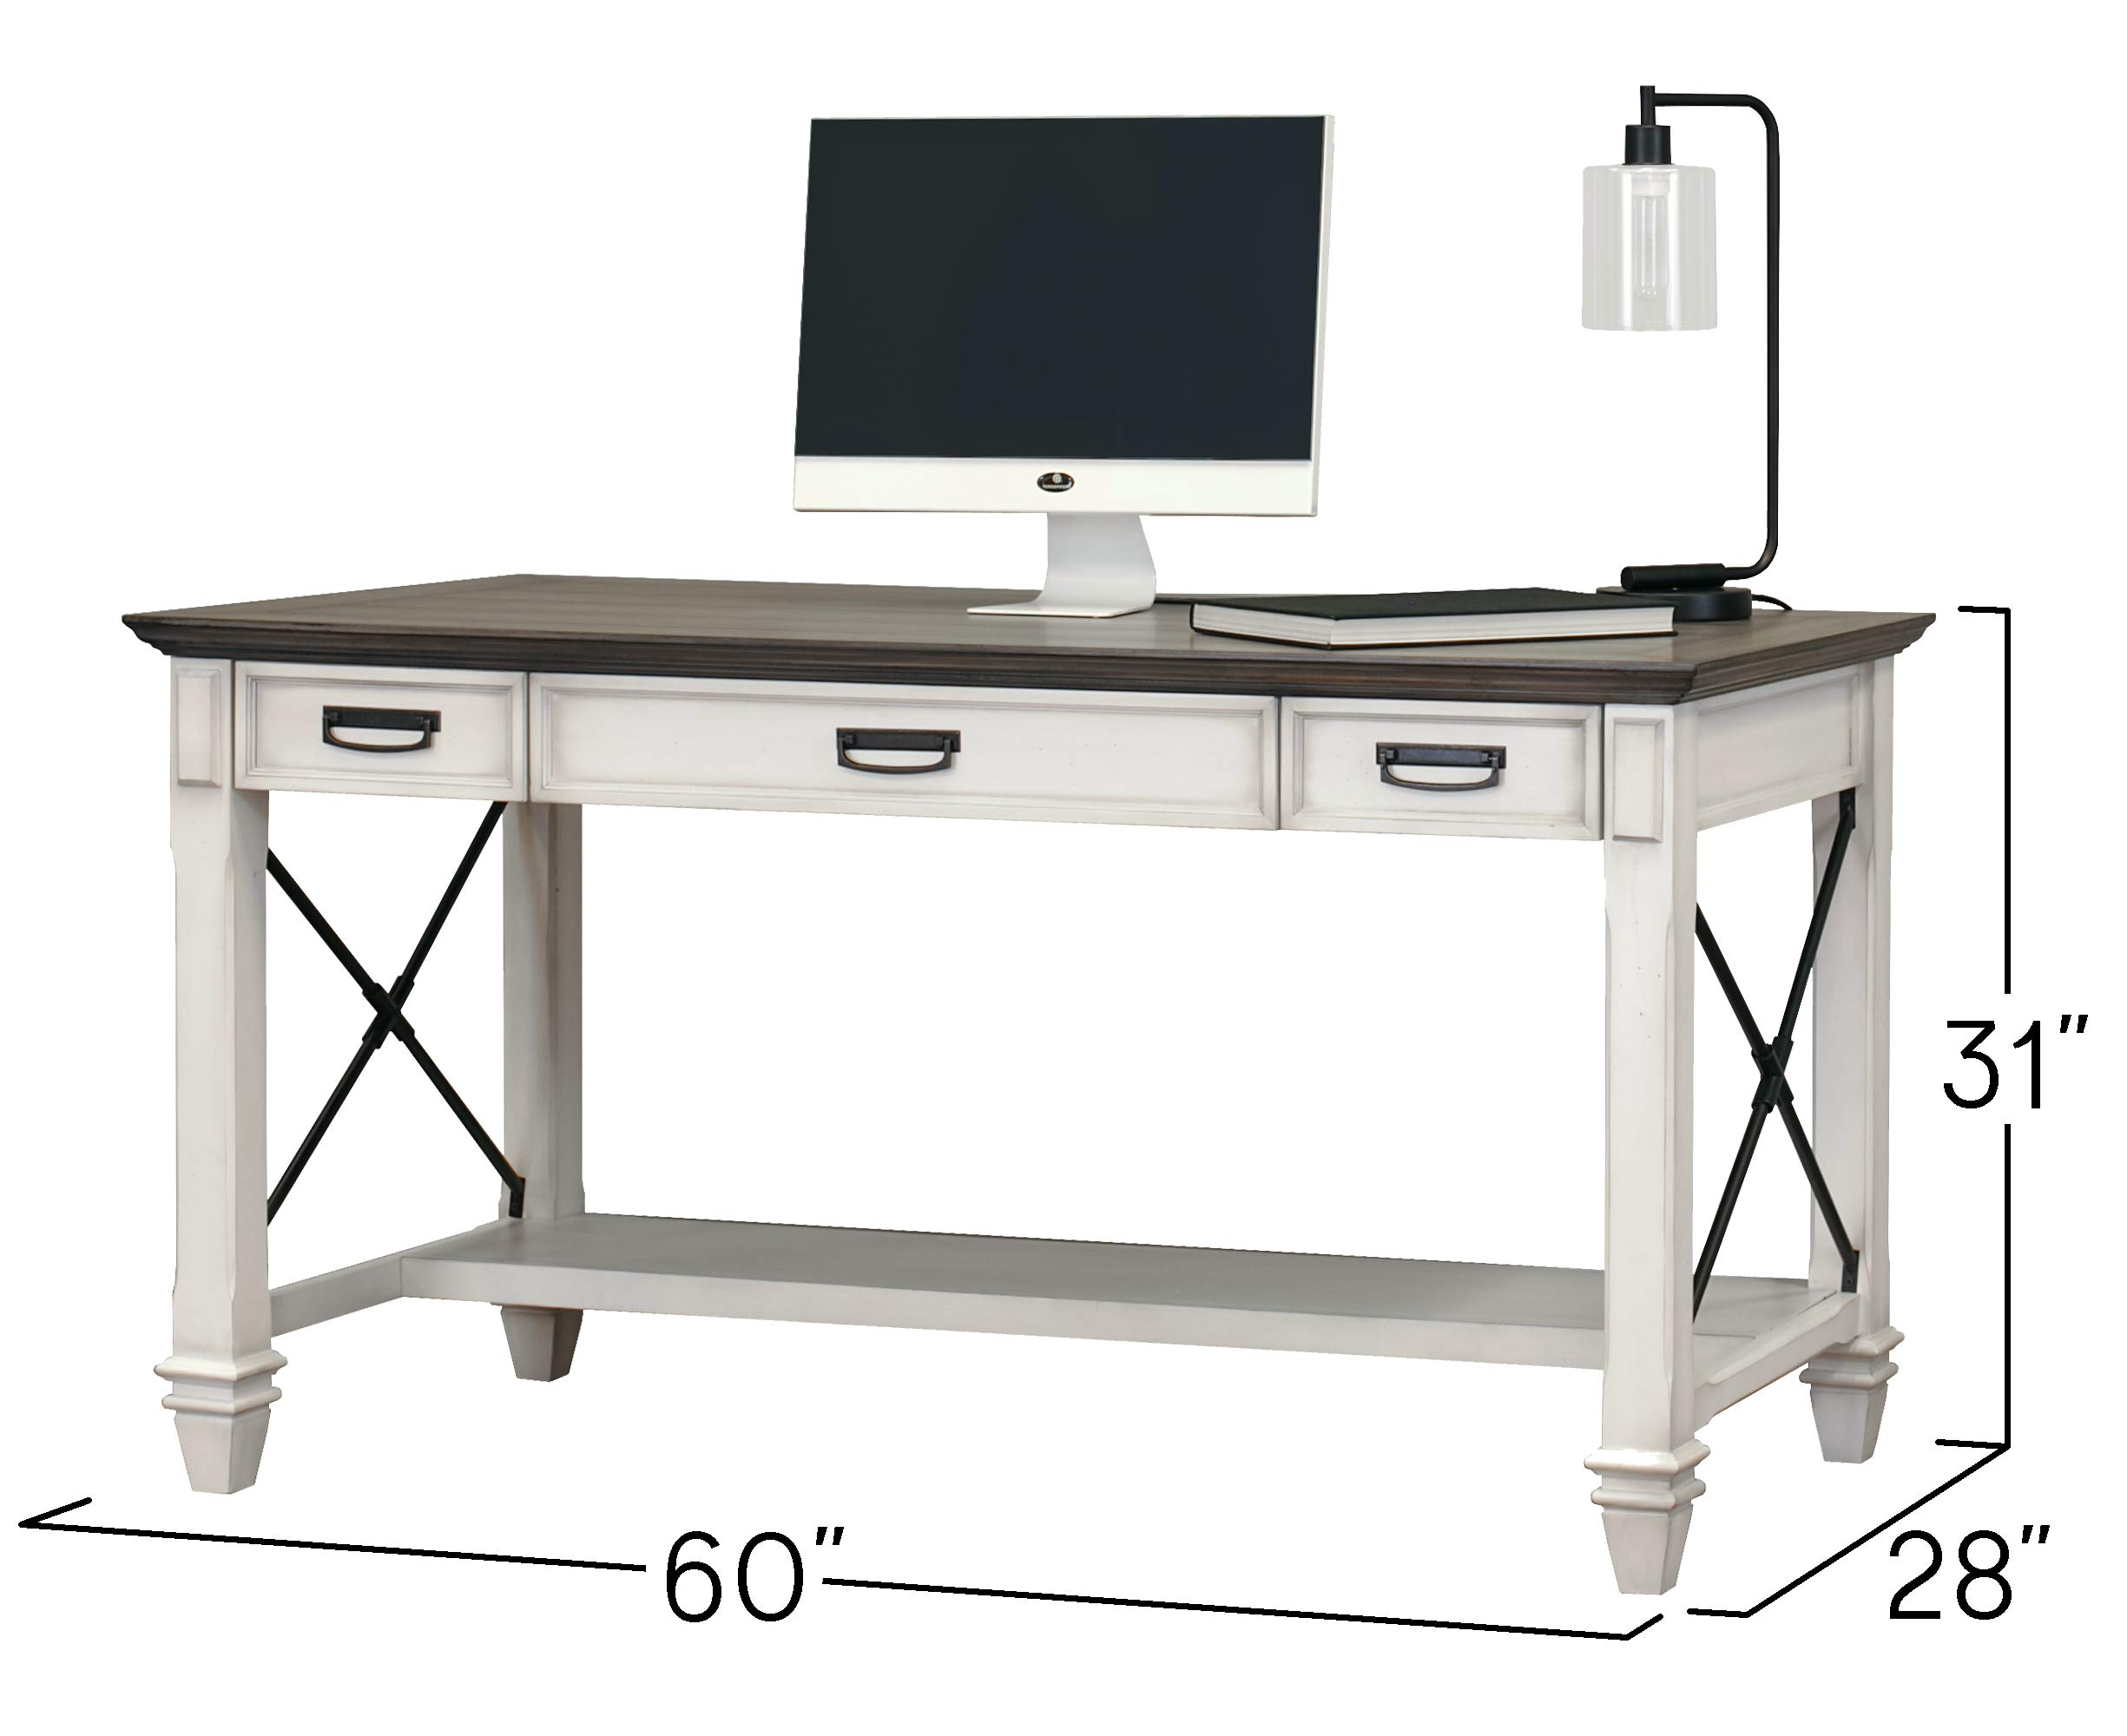 Martin Furniture Writing Table, White by Martin Furniture